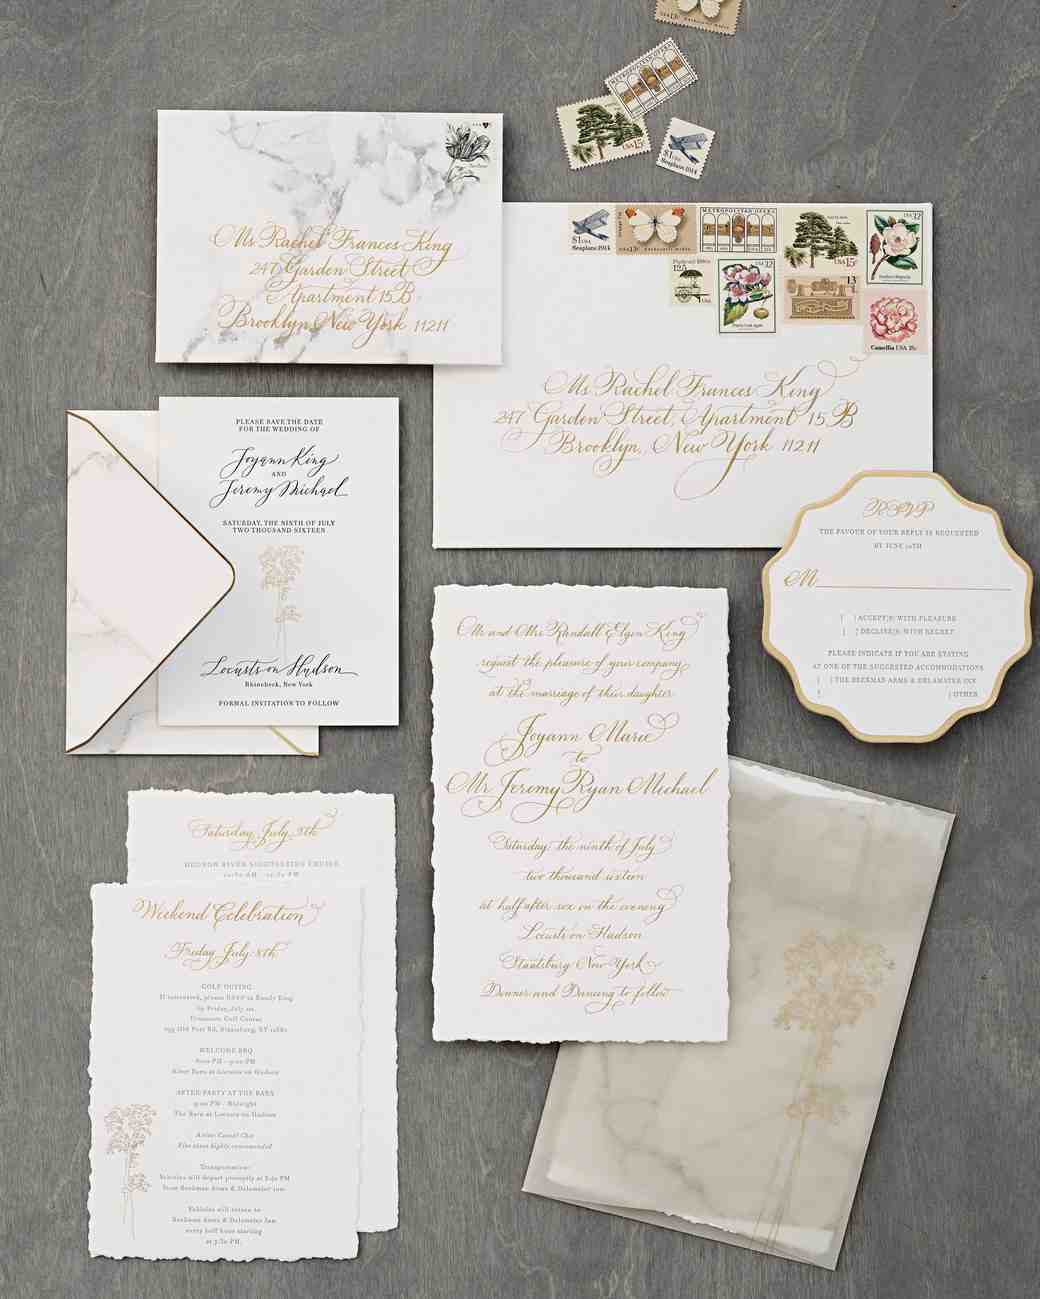 Elegant White, Marble and Gold Wedding Invitations